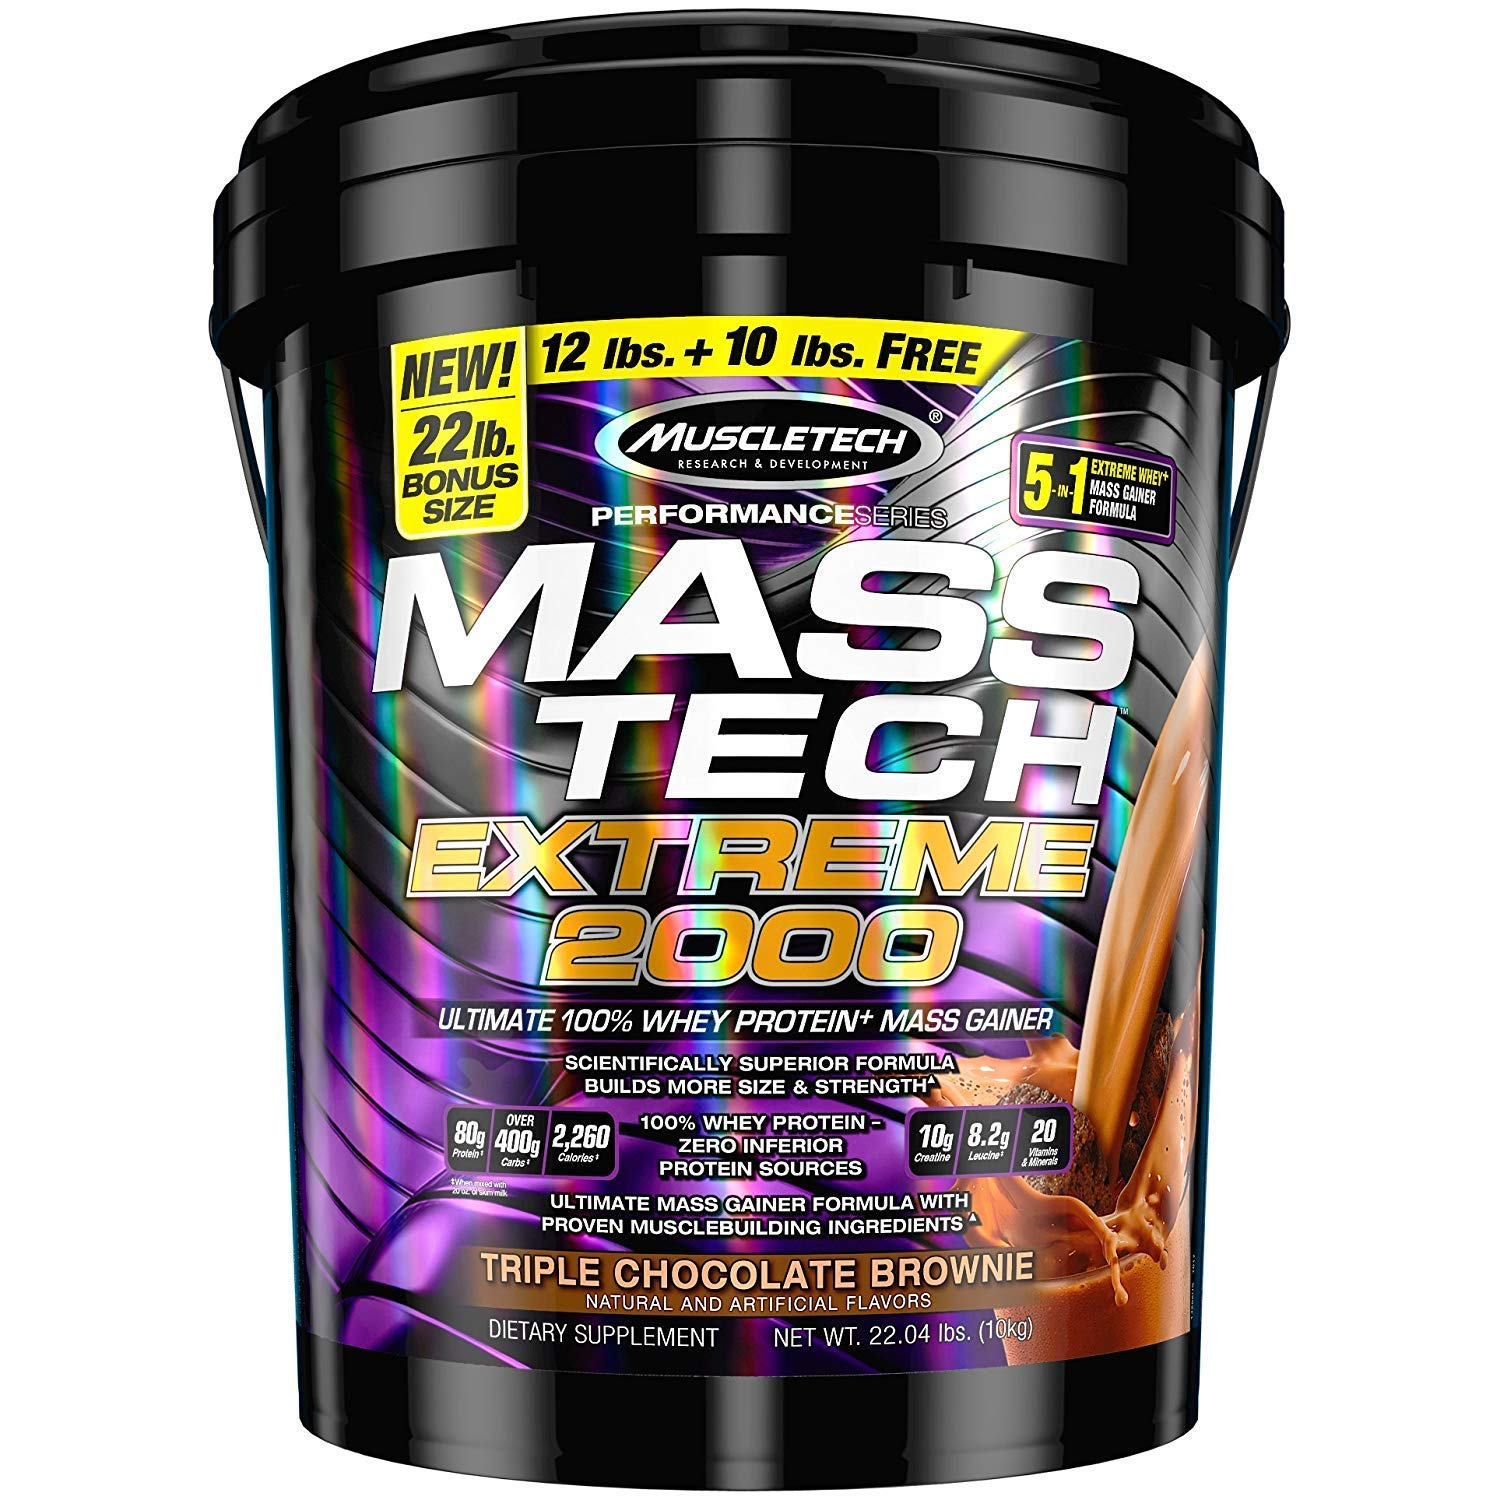 MuscleTech Mass Tech Extreme Weight Gainer Protein Powder, Triple Chocolate Brownie, 22lbs (10kg) by MuscleTech (Image #1)